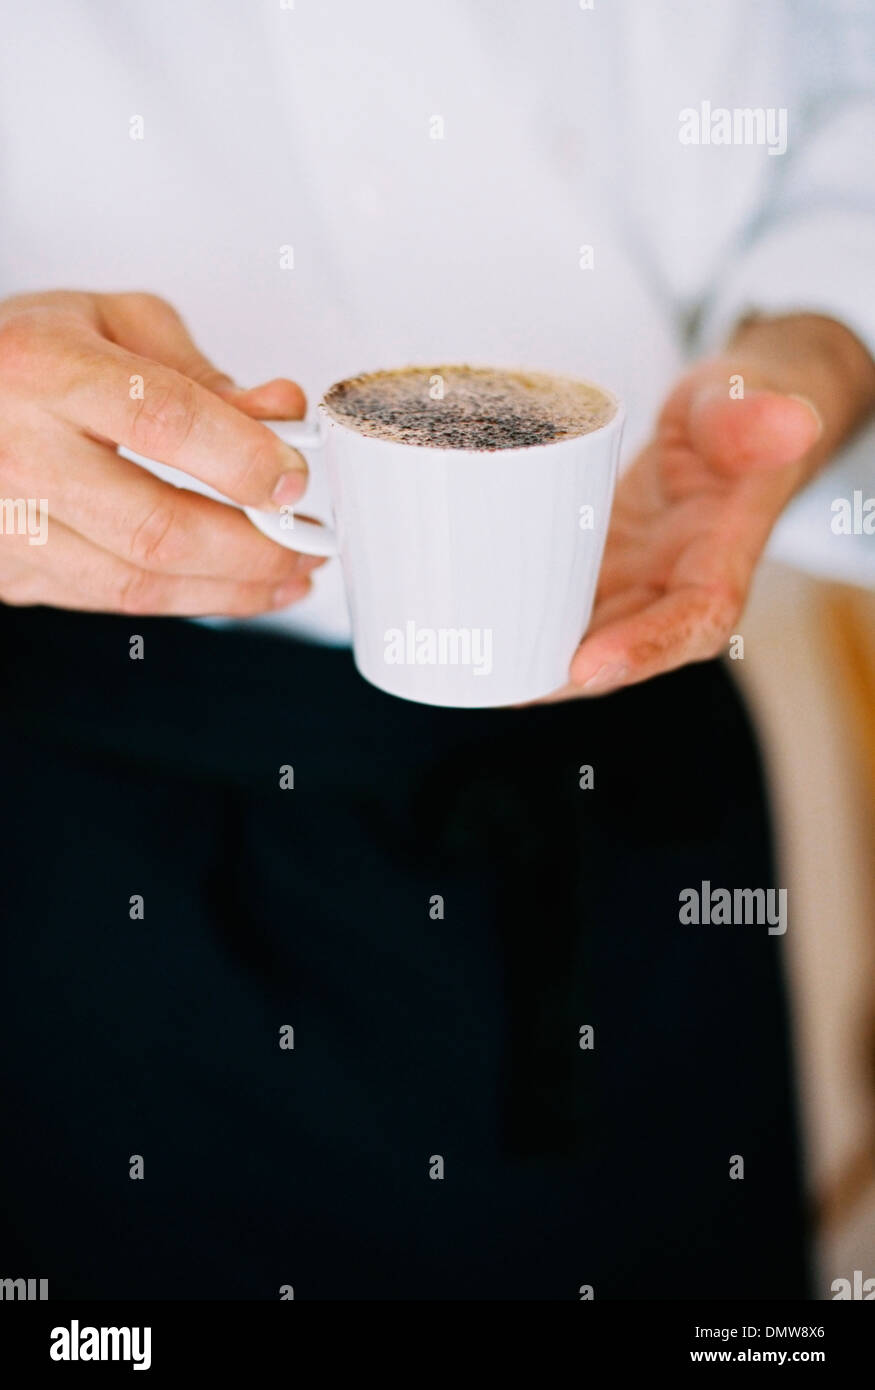 A person holding a full cup of coffee. Froth. - Stock Image